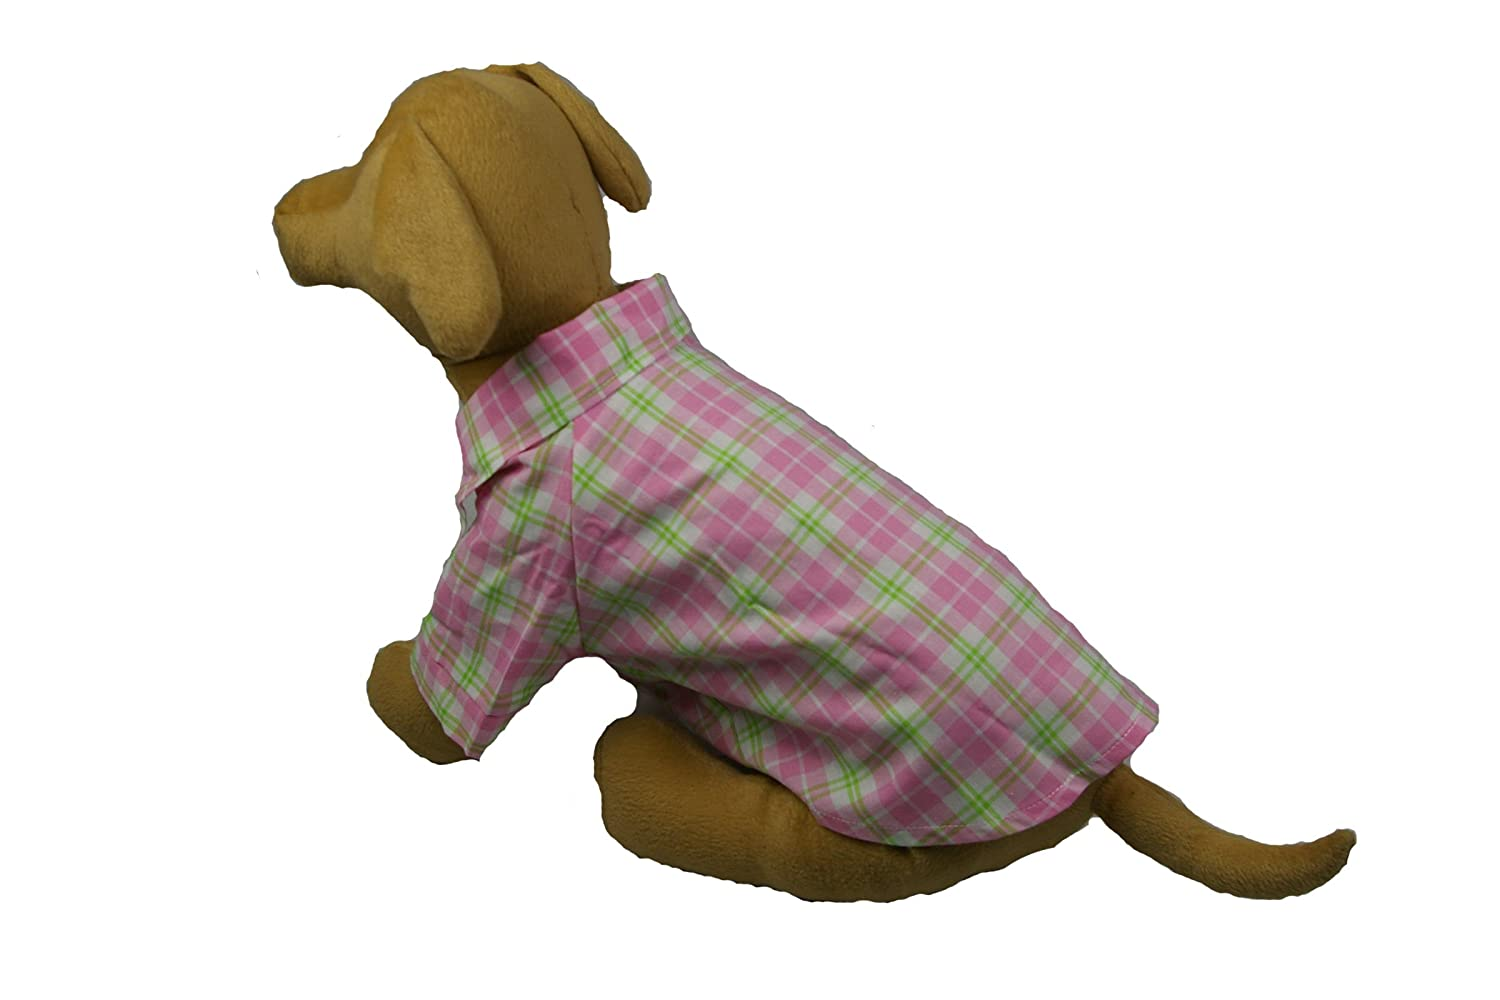 PET LIFE 'Woven Fashion' Buttoned Designer Plaid Pet Dog Woven T-Shirt, X-Small, Light Pink Plaid